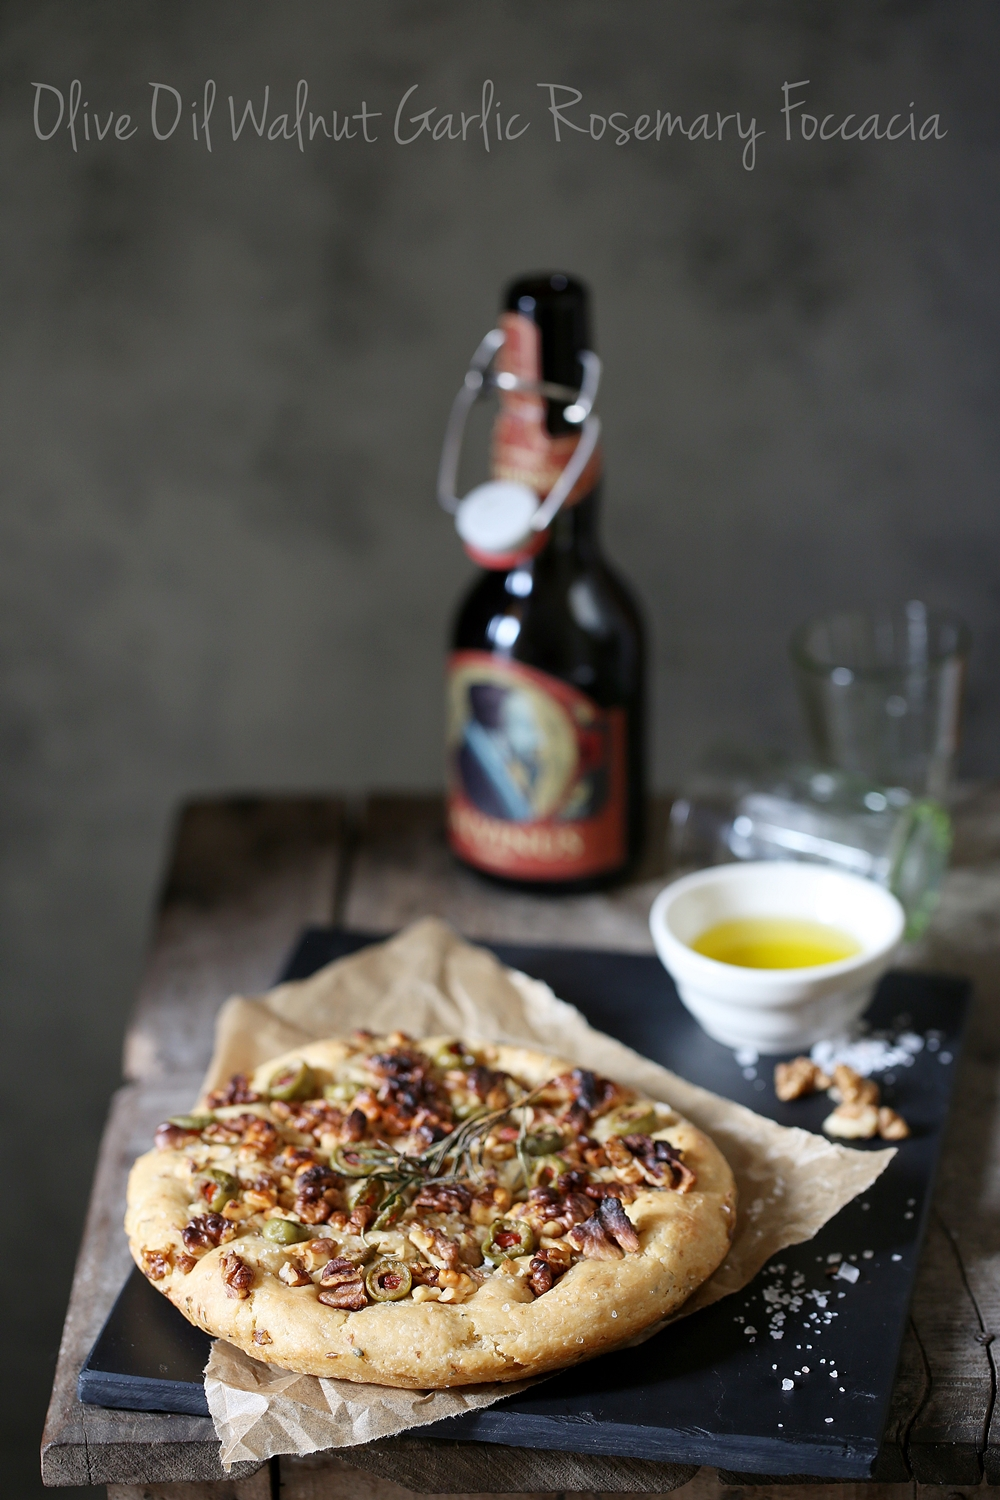 Olive Oil Walnut Garlic Rosemary Foccacia